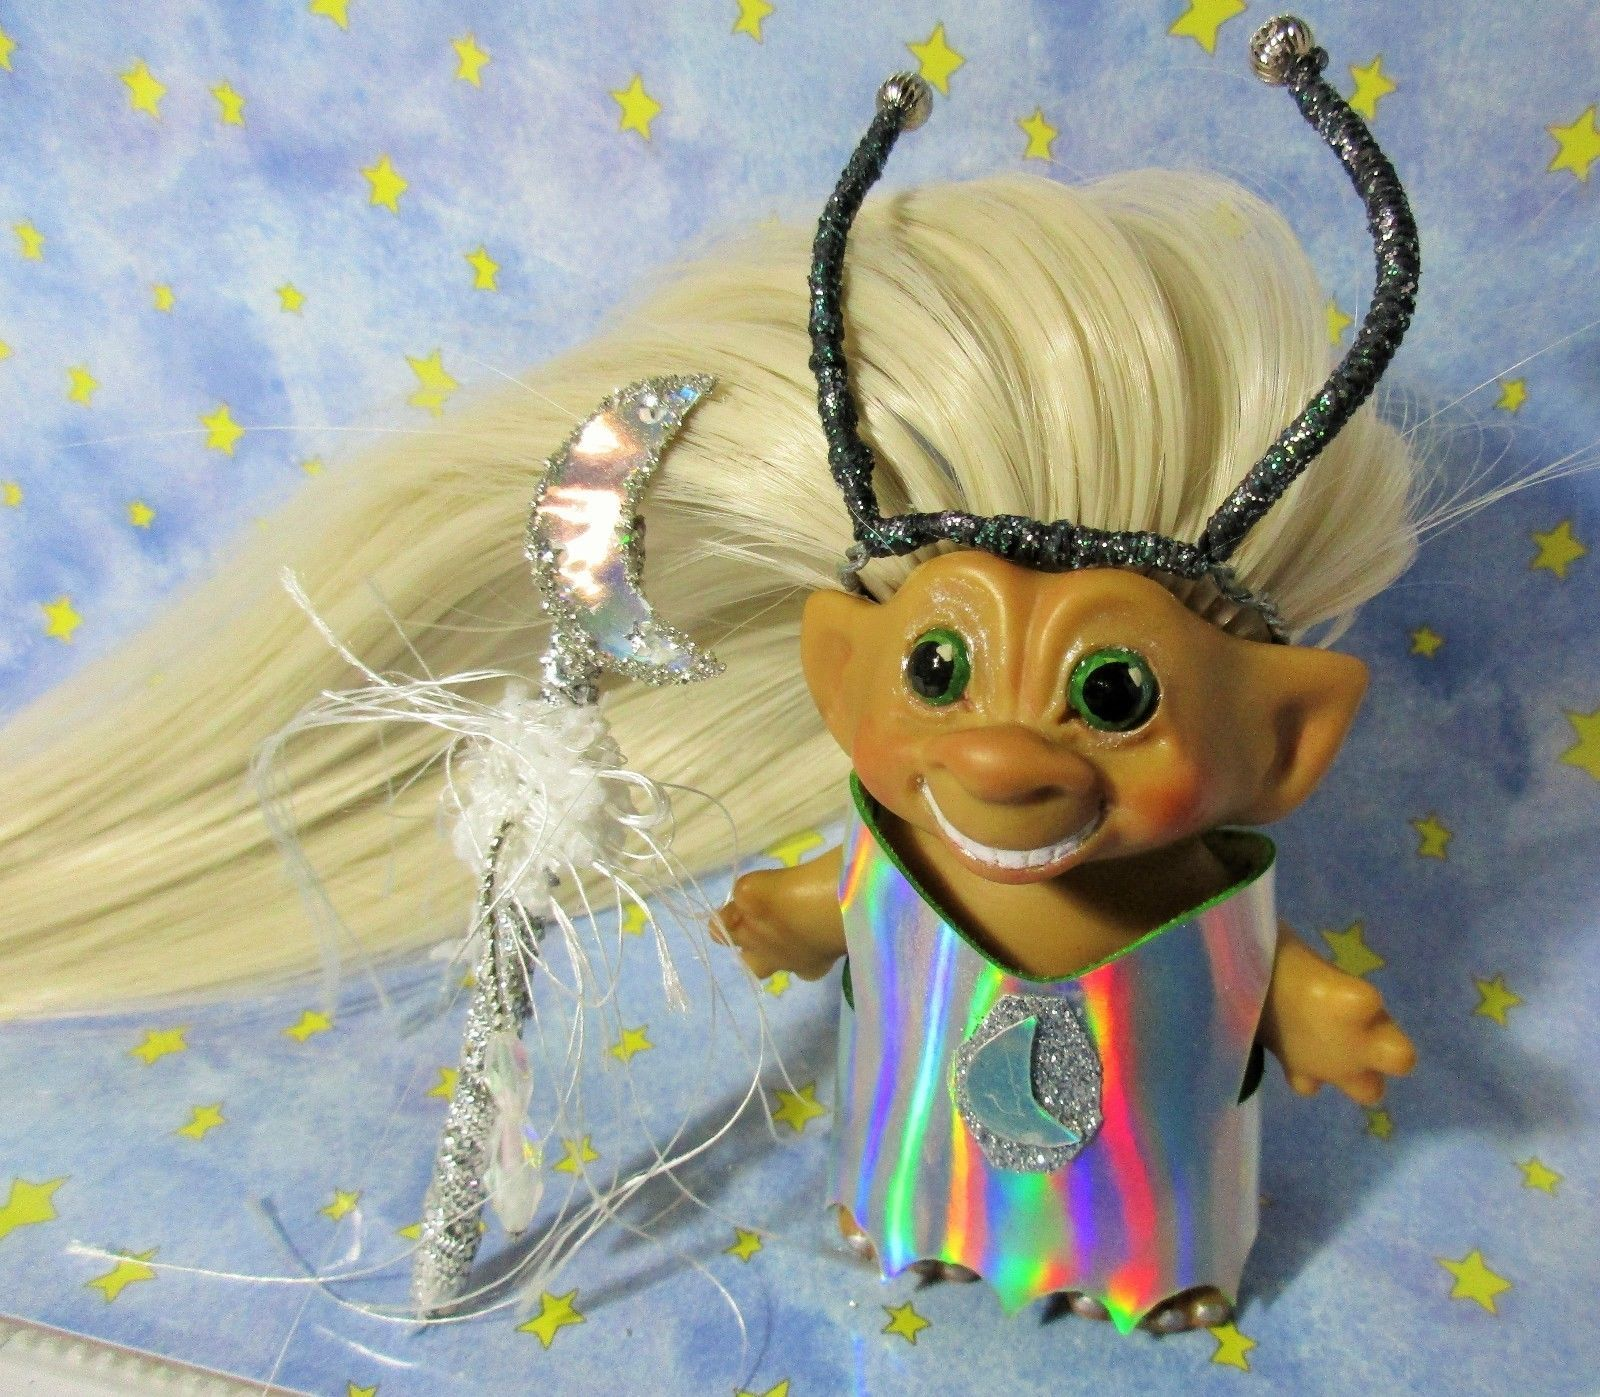 SMILING ROOTIE 3-IN Custom Troll Doll rooted vintage 60s Martian Moon Wand Alien image 4